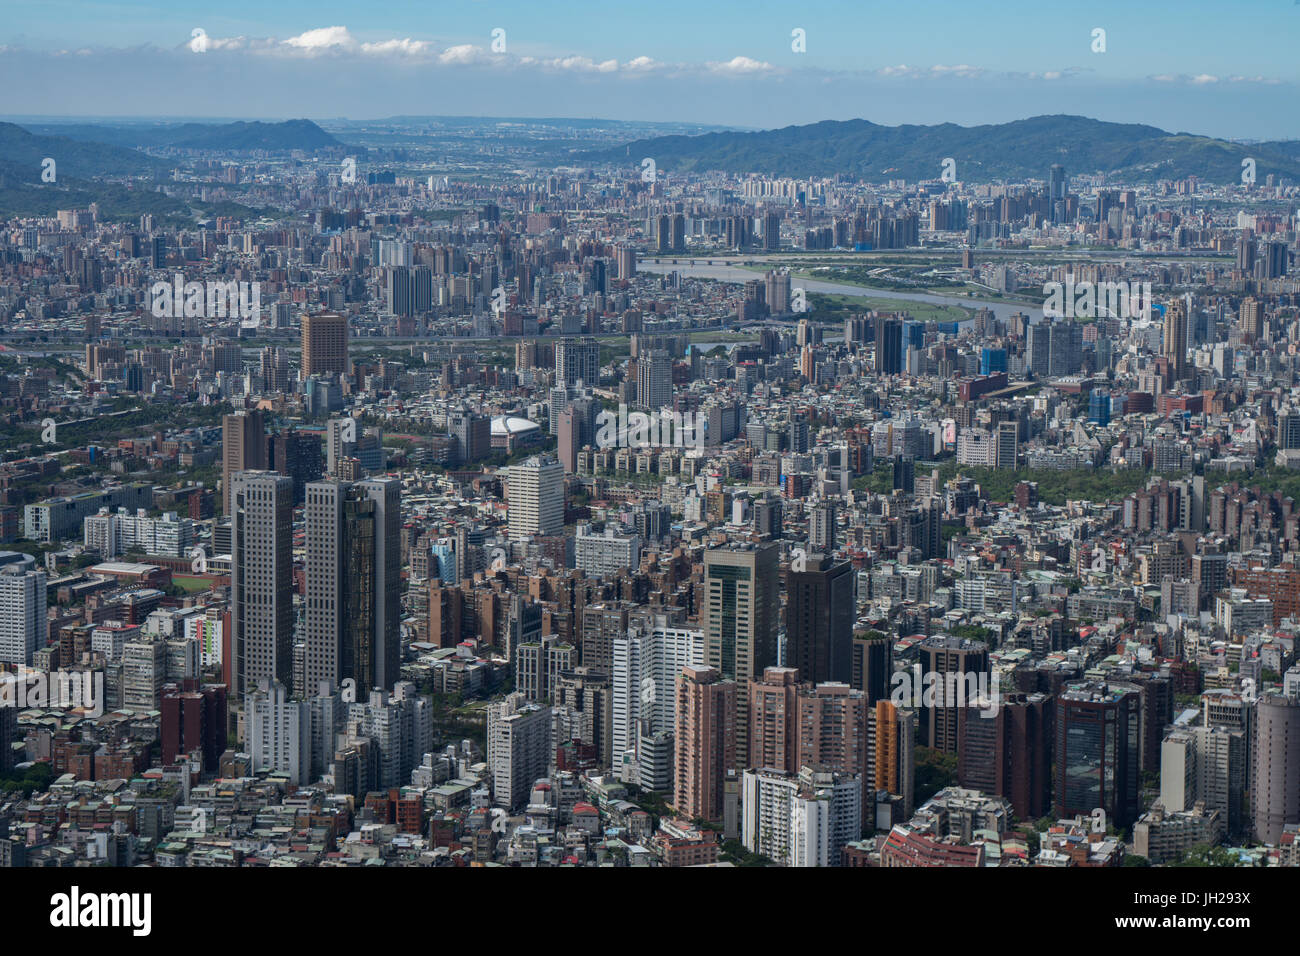 Taipei cityscape as seen from Taipei 101, the world's eighth tallest building at 1667 ft, Taipei, Taiwan, Asia Stock Photo